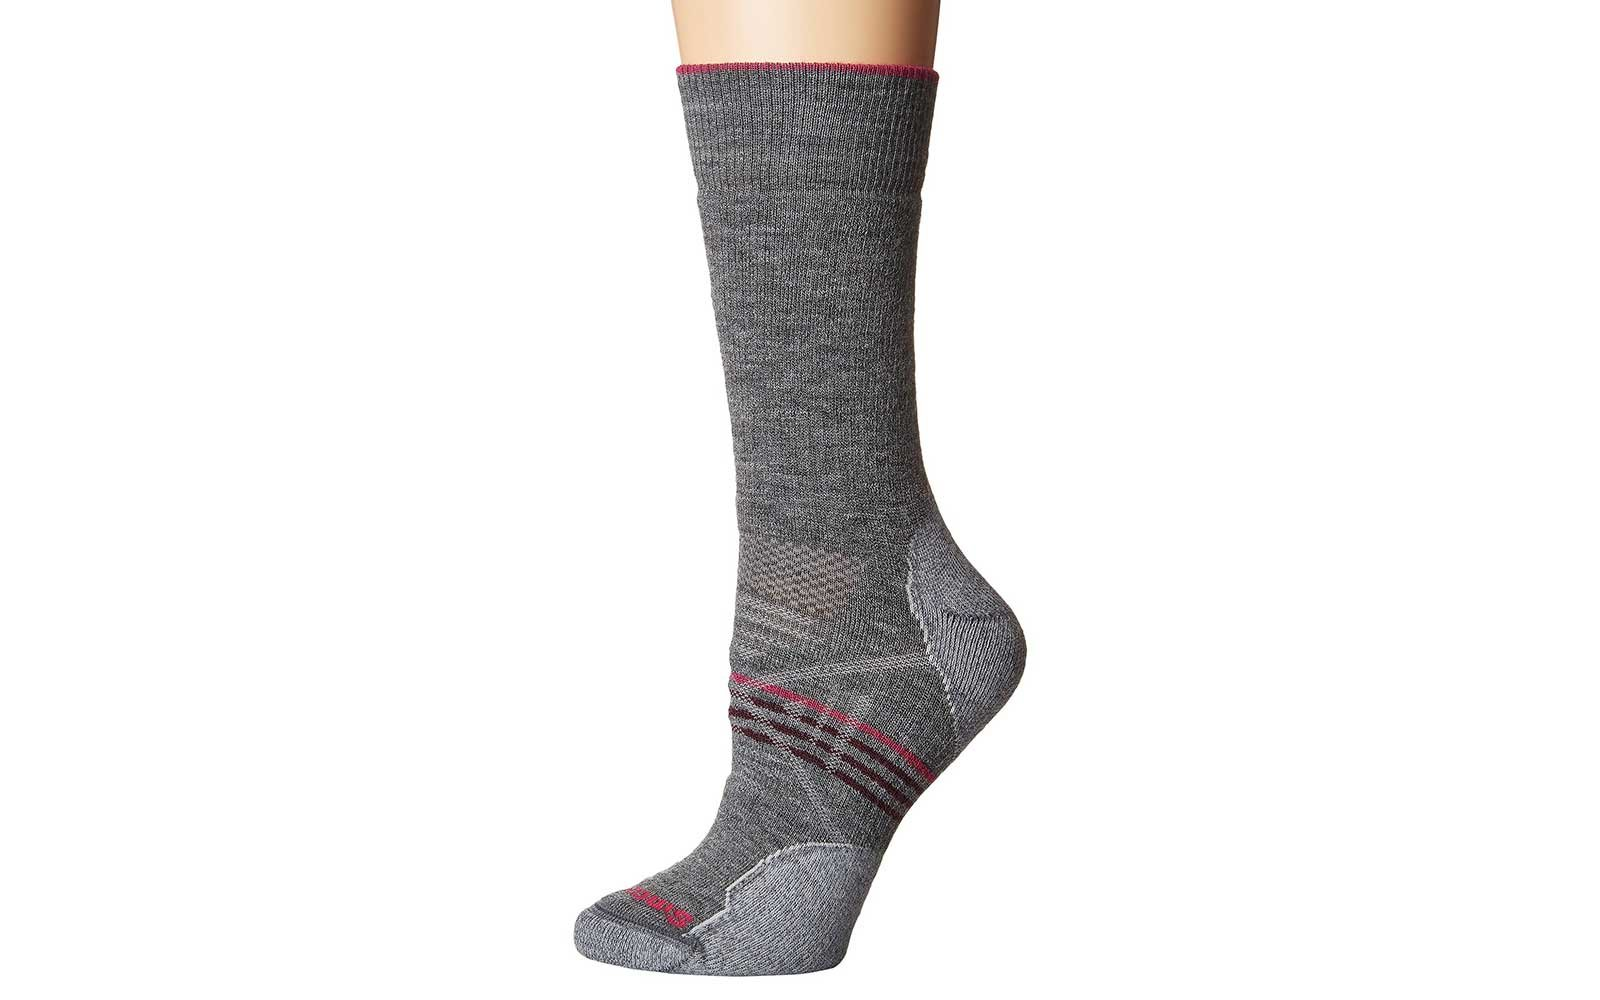 Best Wool Socks: Smartwool PhD Outdoor Medium Crew Socks